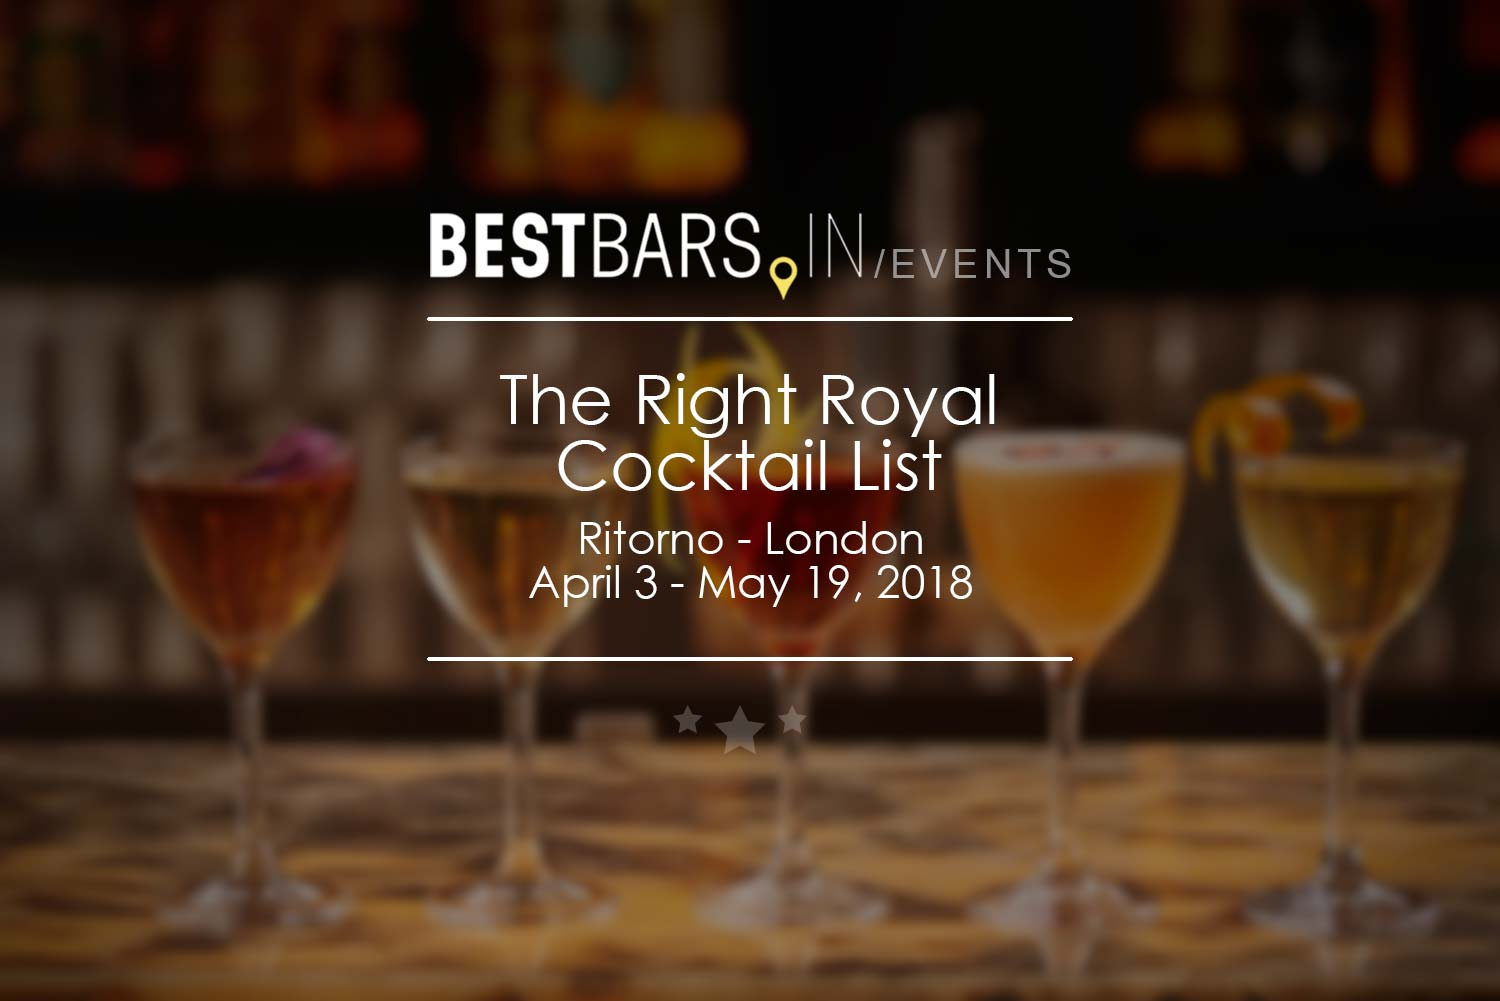 The Right Royal Cocktail List - Ritorno, London